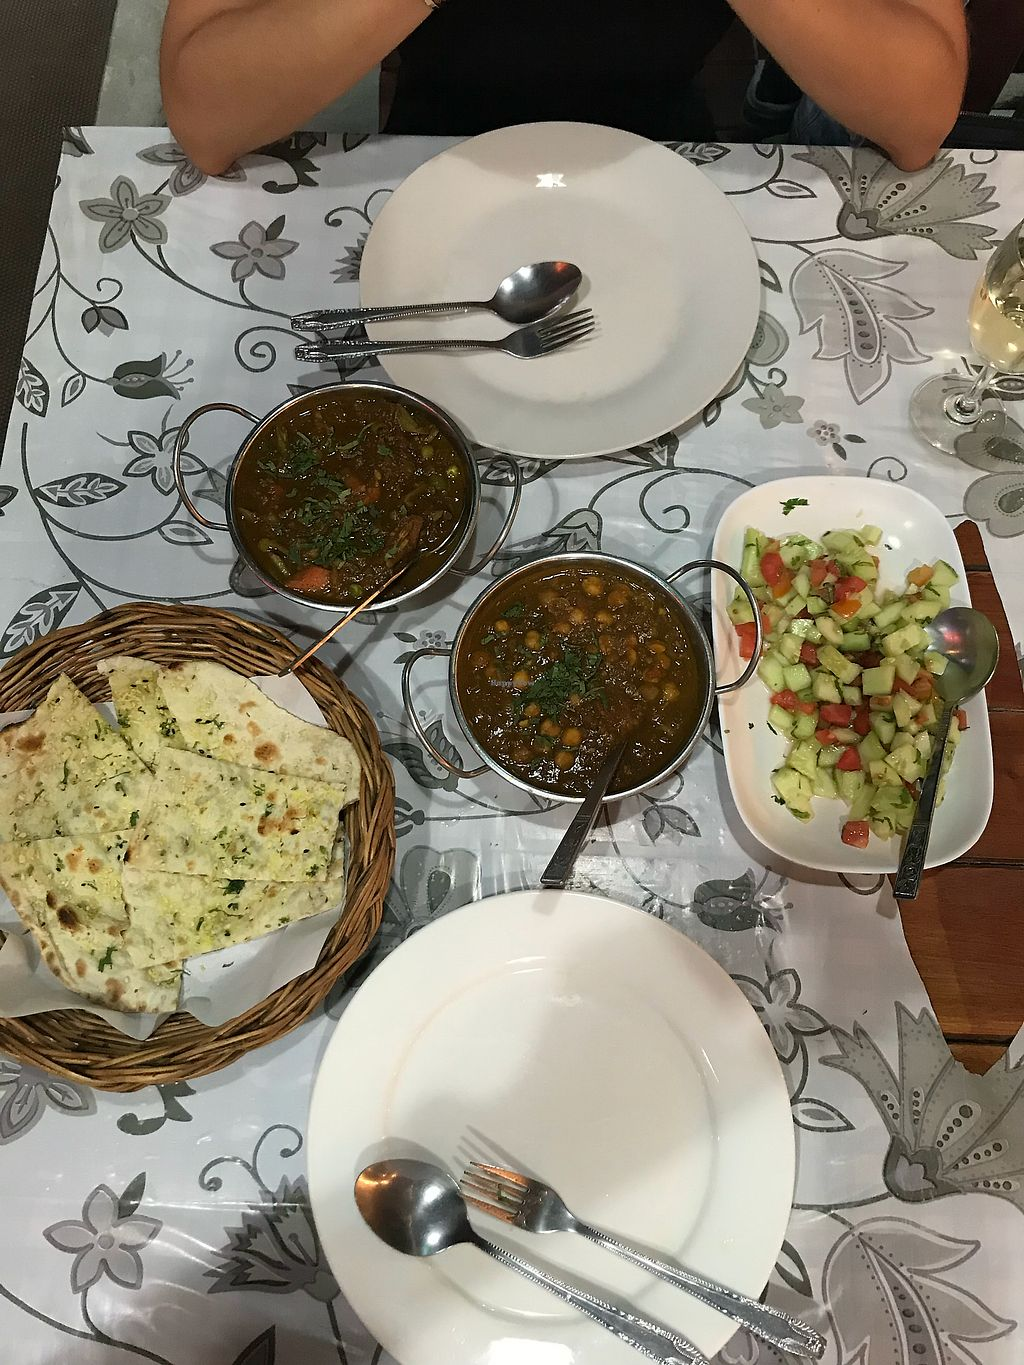 """Photo of Taste of India  by <a href=""""/members/profile/VeraP.V."""">VeraP.V.</a> <br/>Great taste! <br/> January 2, 2018  - <a href='/contact/abuse/image/90087/342218'>Report</a>"""